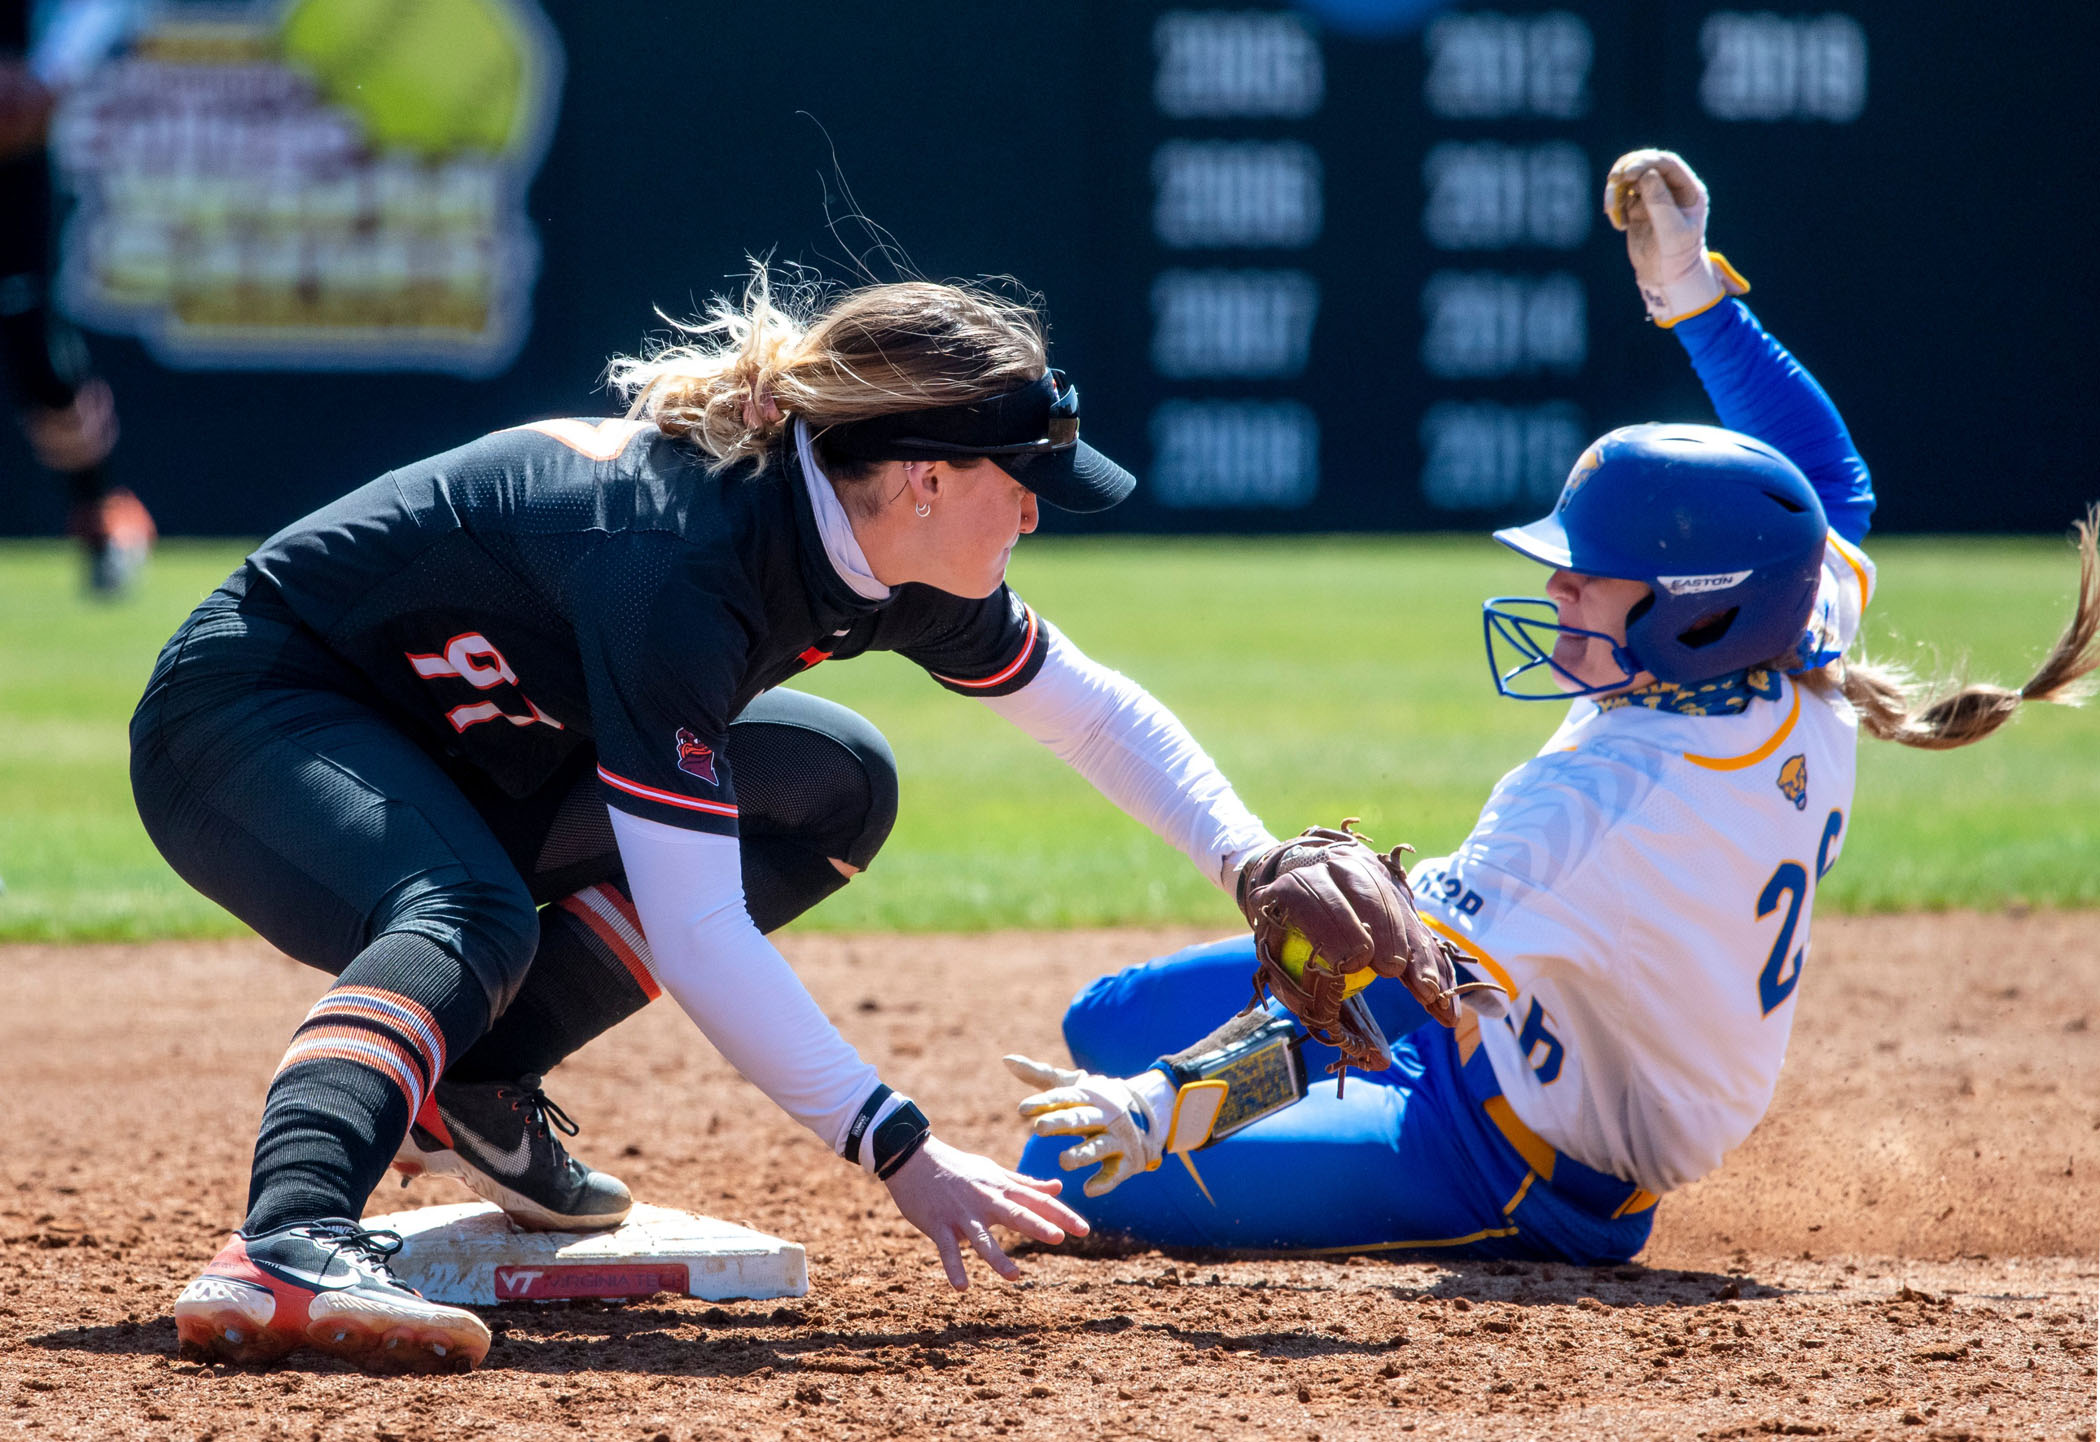 Cameron Fagan Virginia Tech Softball